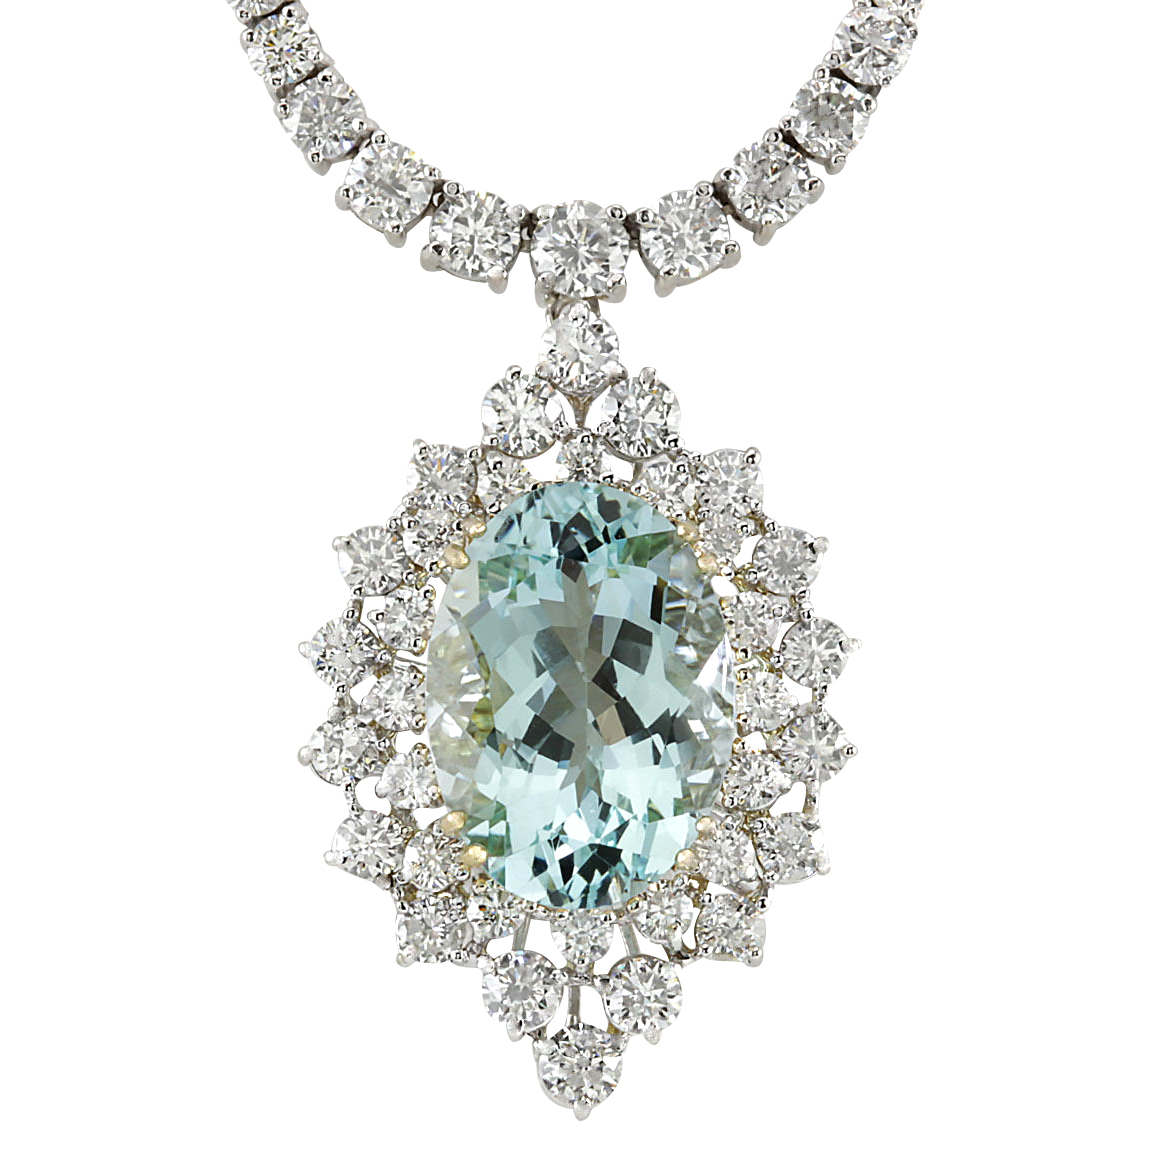 19.85CTW Natural Aquamarine And Diamond Necklace In 14K White Gold by